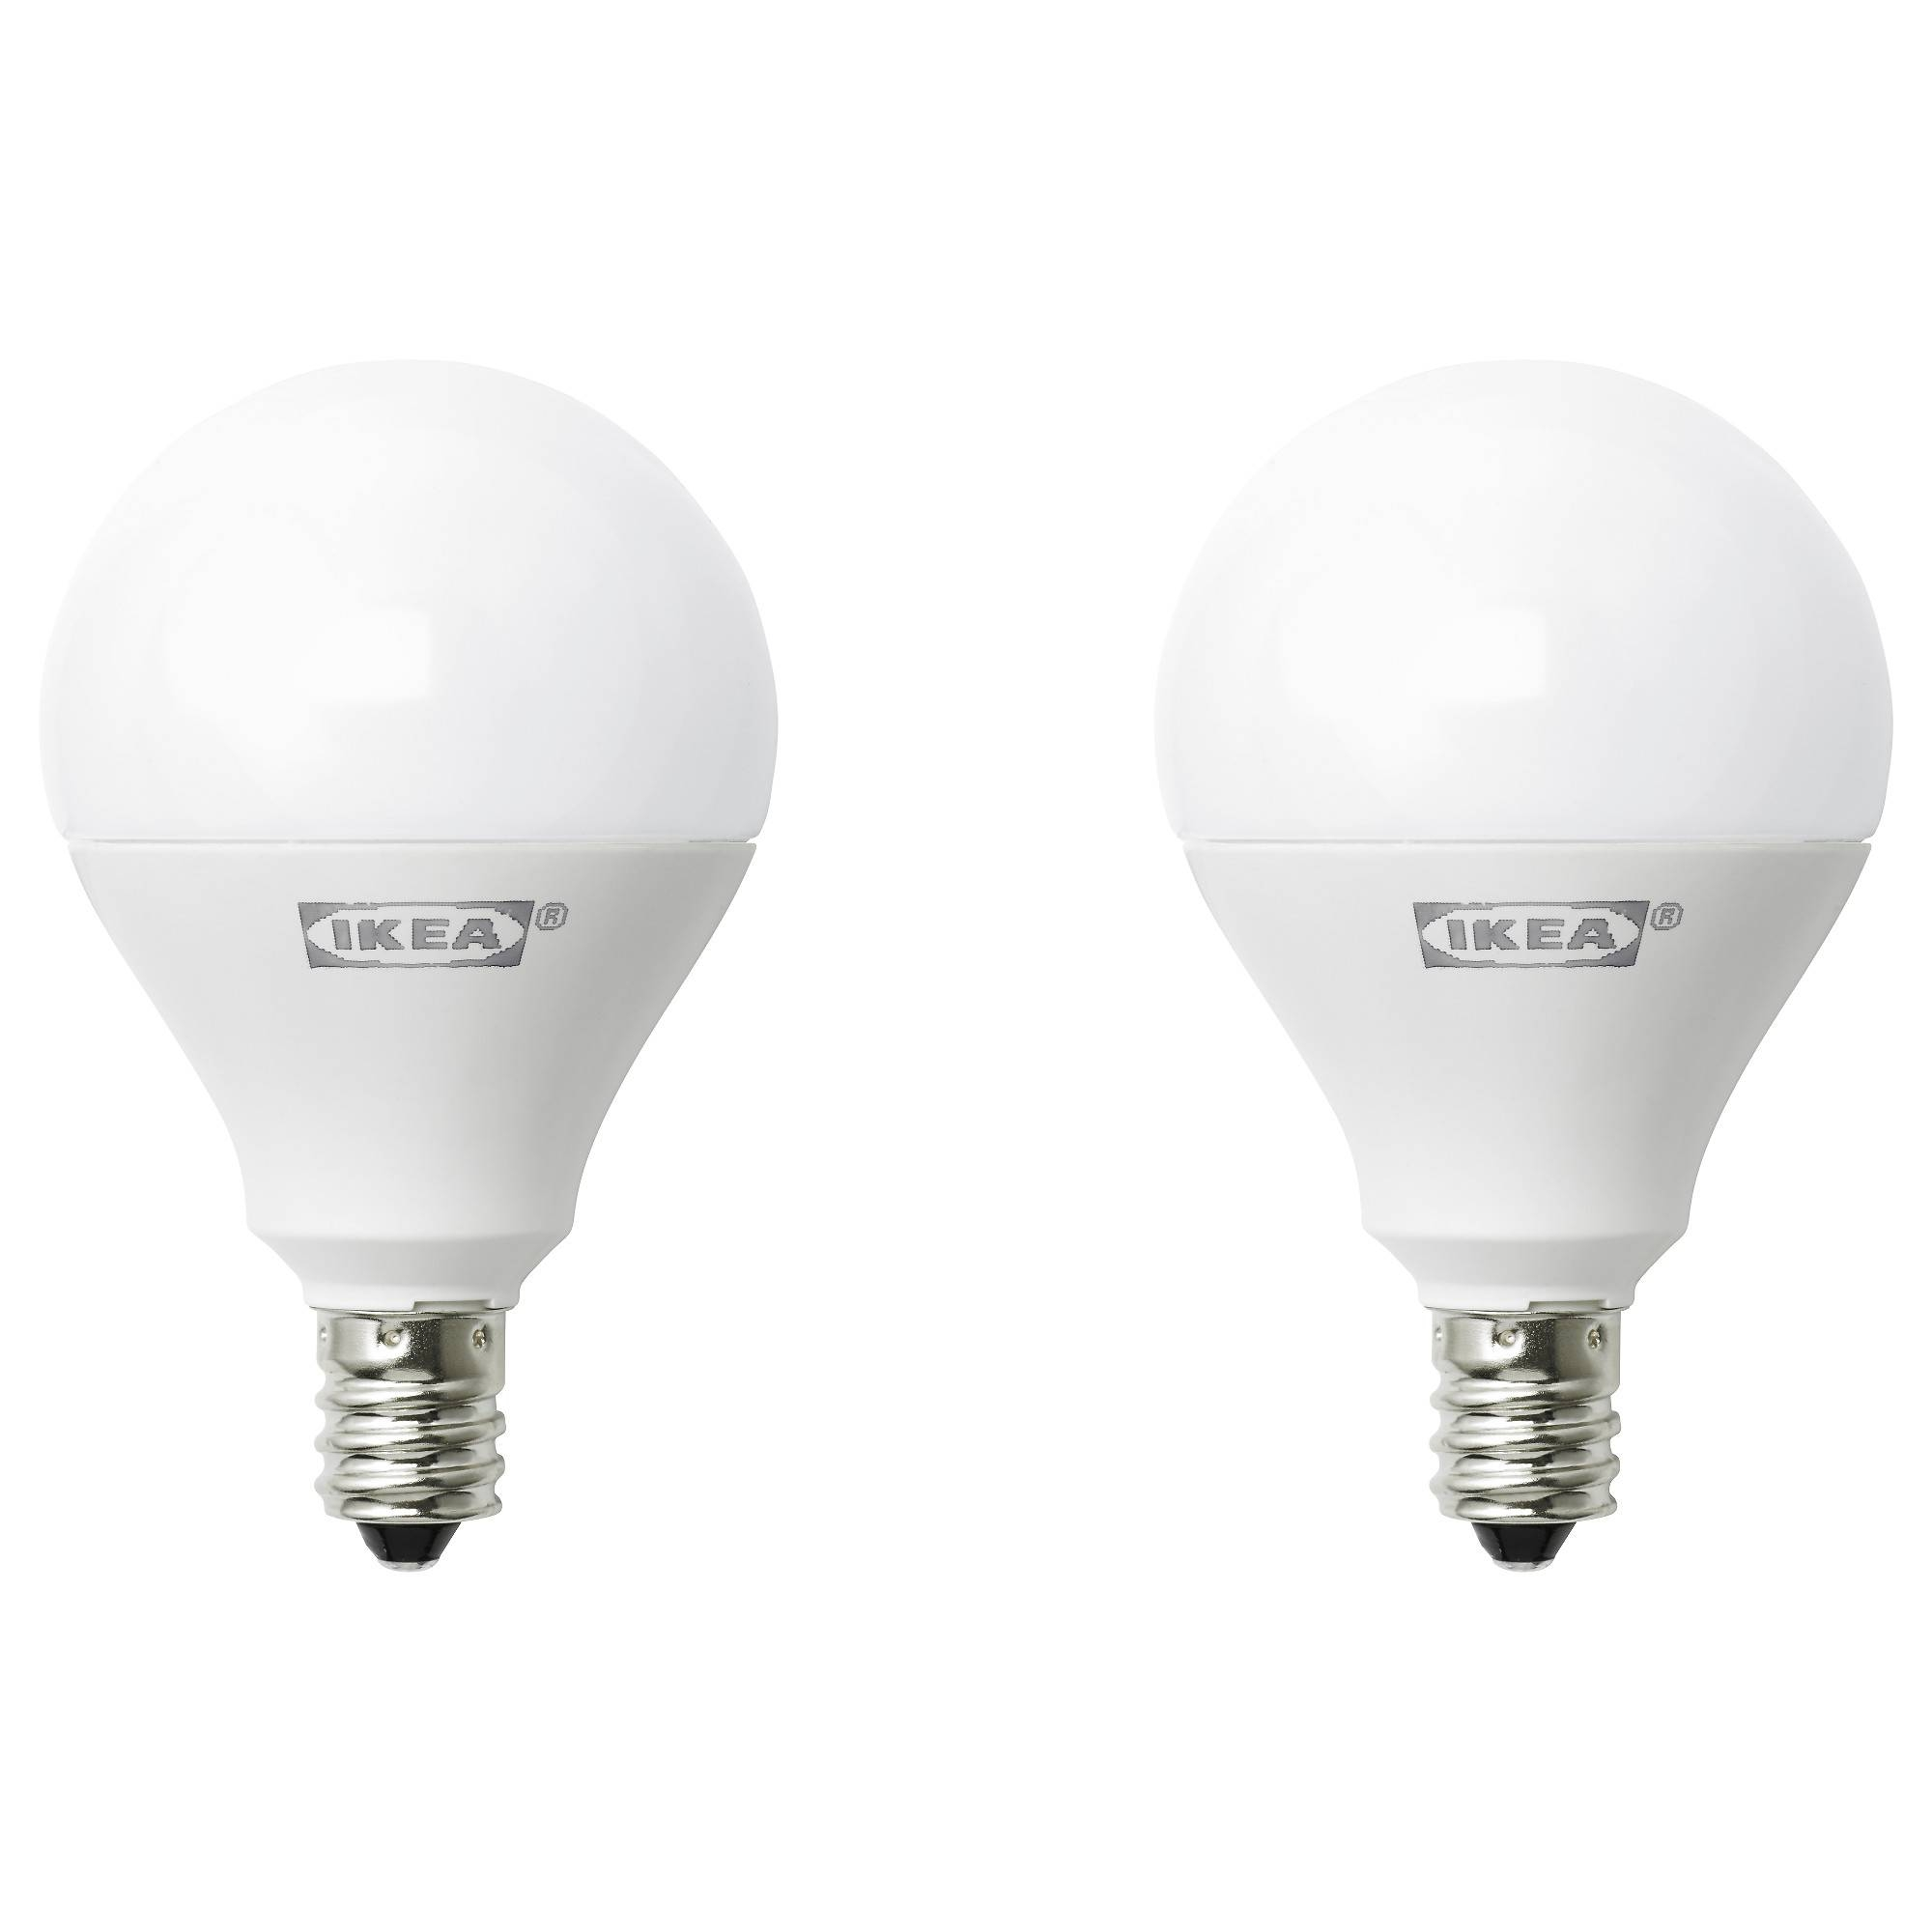 Led Lights & Light Bulbs - Ikea with regard to Ikea Recessed Lighting (Image 10 of 15)